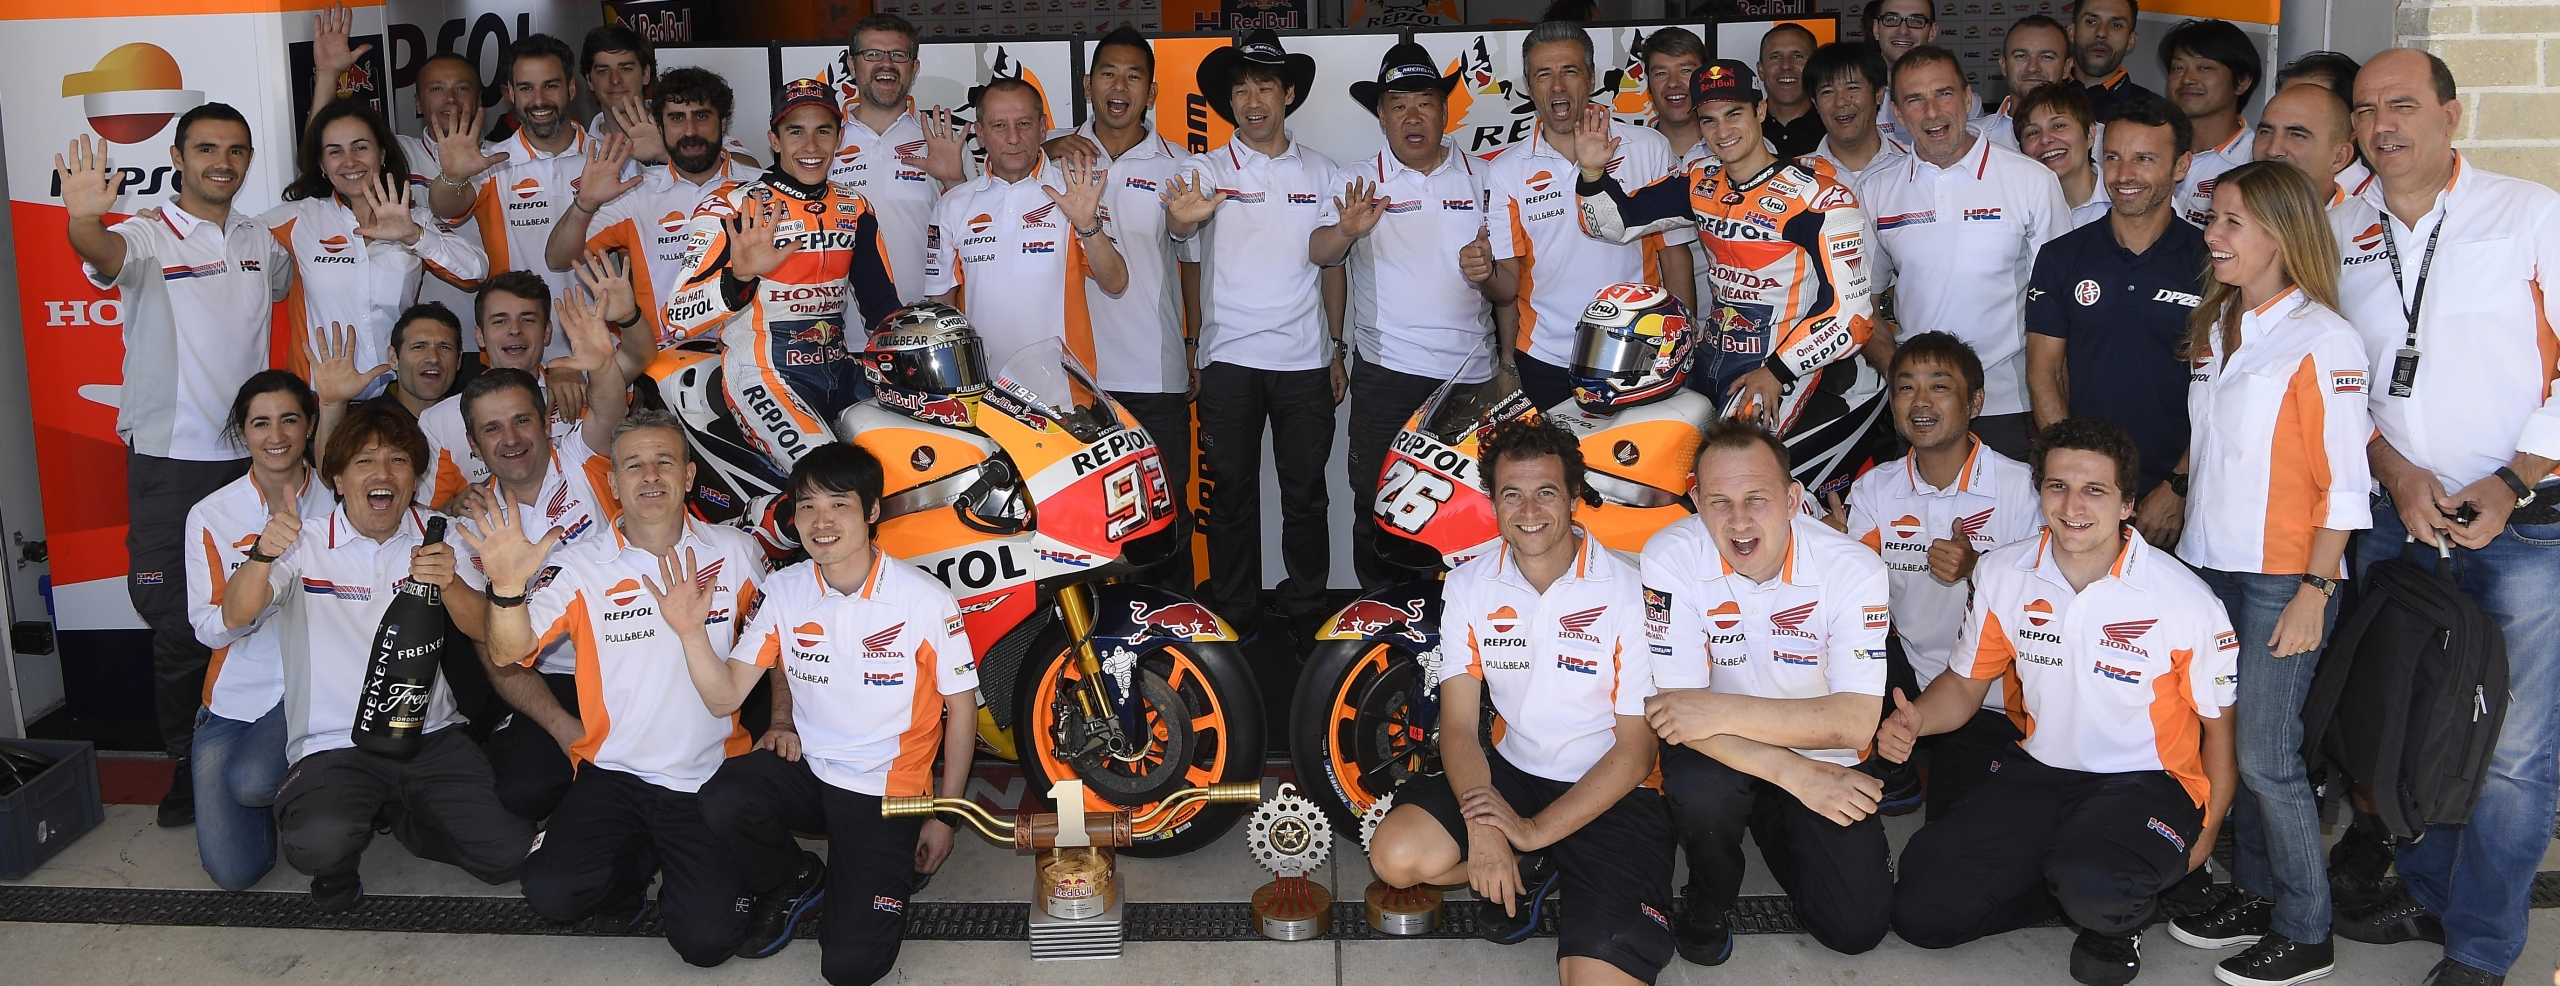 PHOTO GALLERY – Double podium finish for Repsol Honda Team at the GP of the Americas